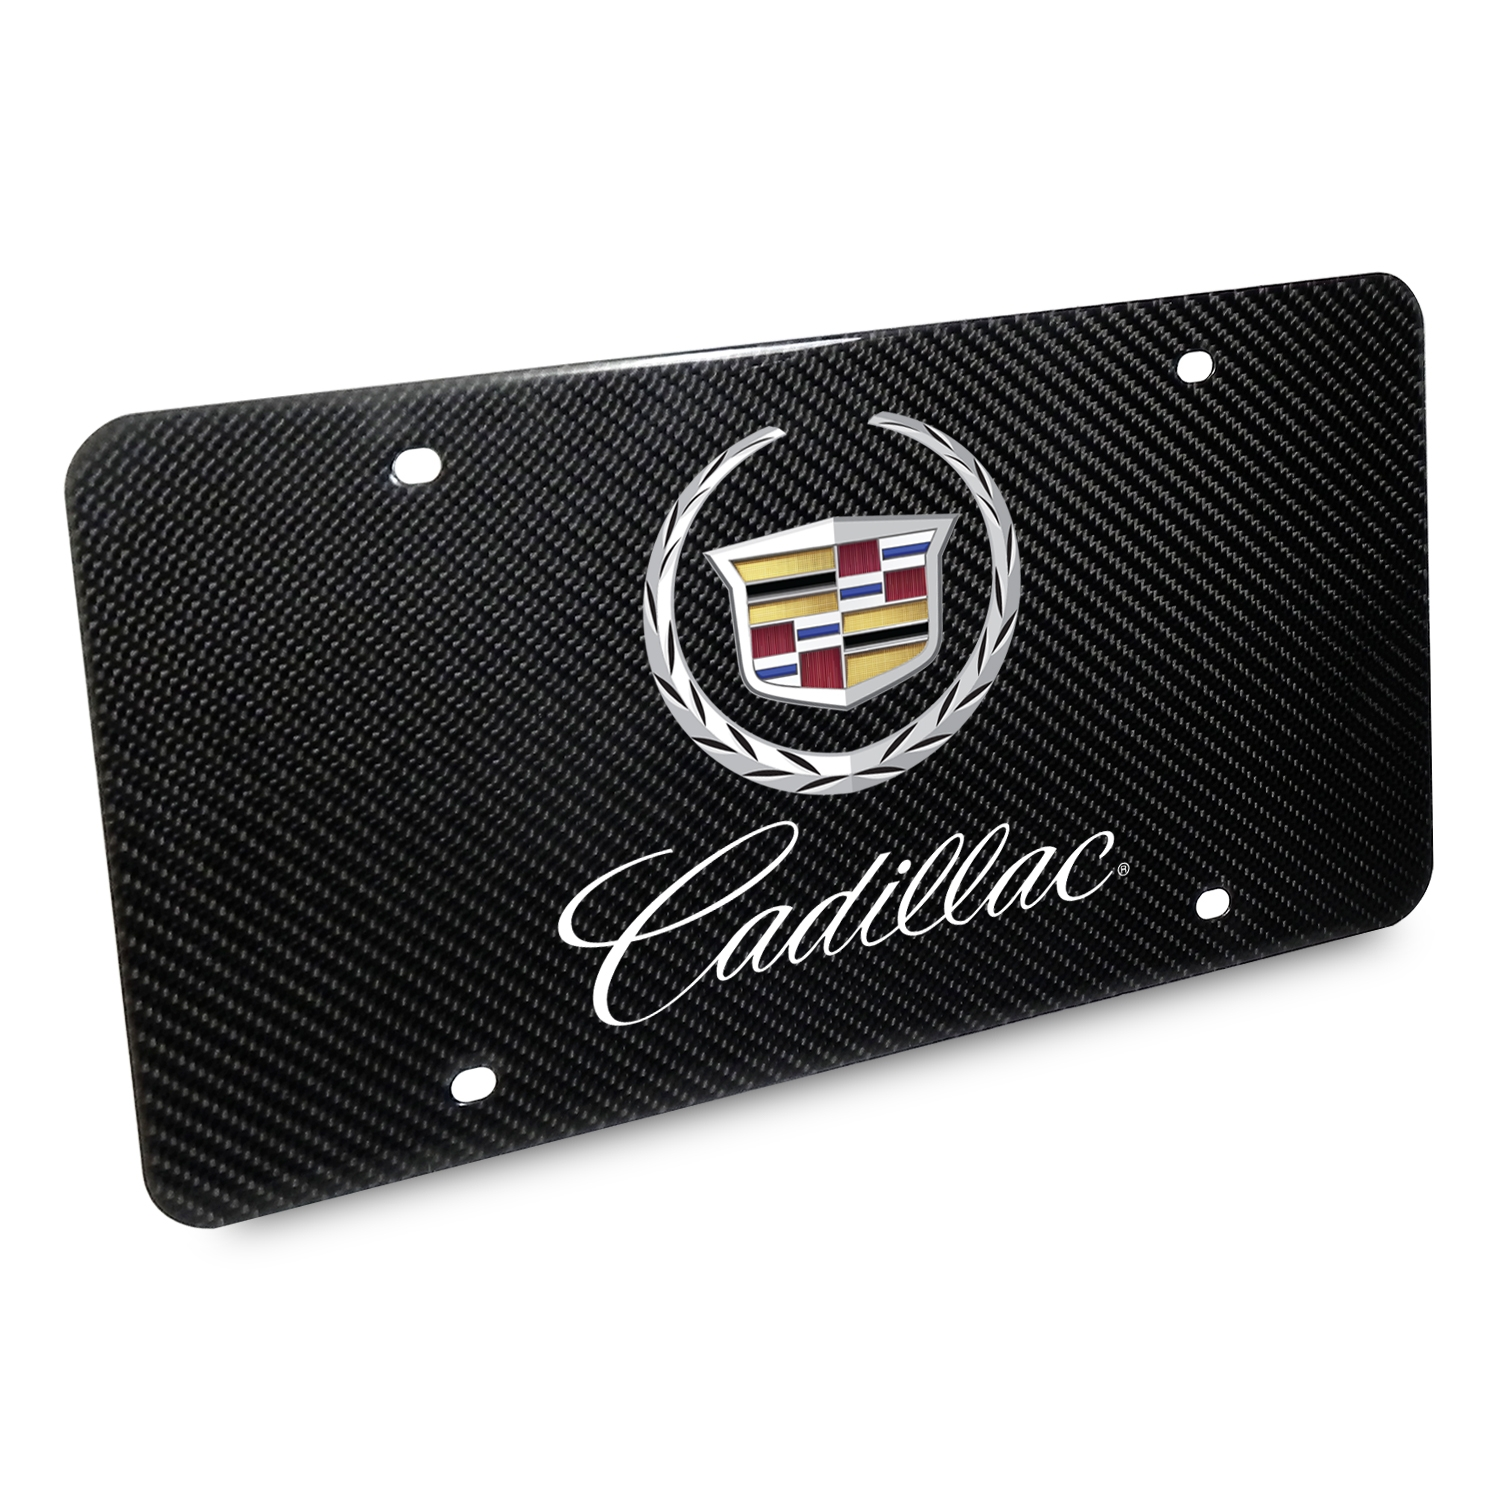 Cadillac 2013 Dual Logo UV Graphic 100% Real Black Carbon Fiber License Plate